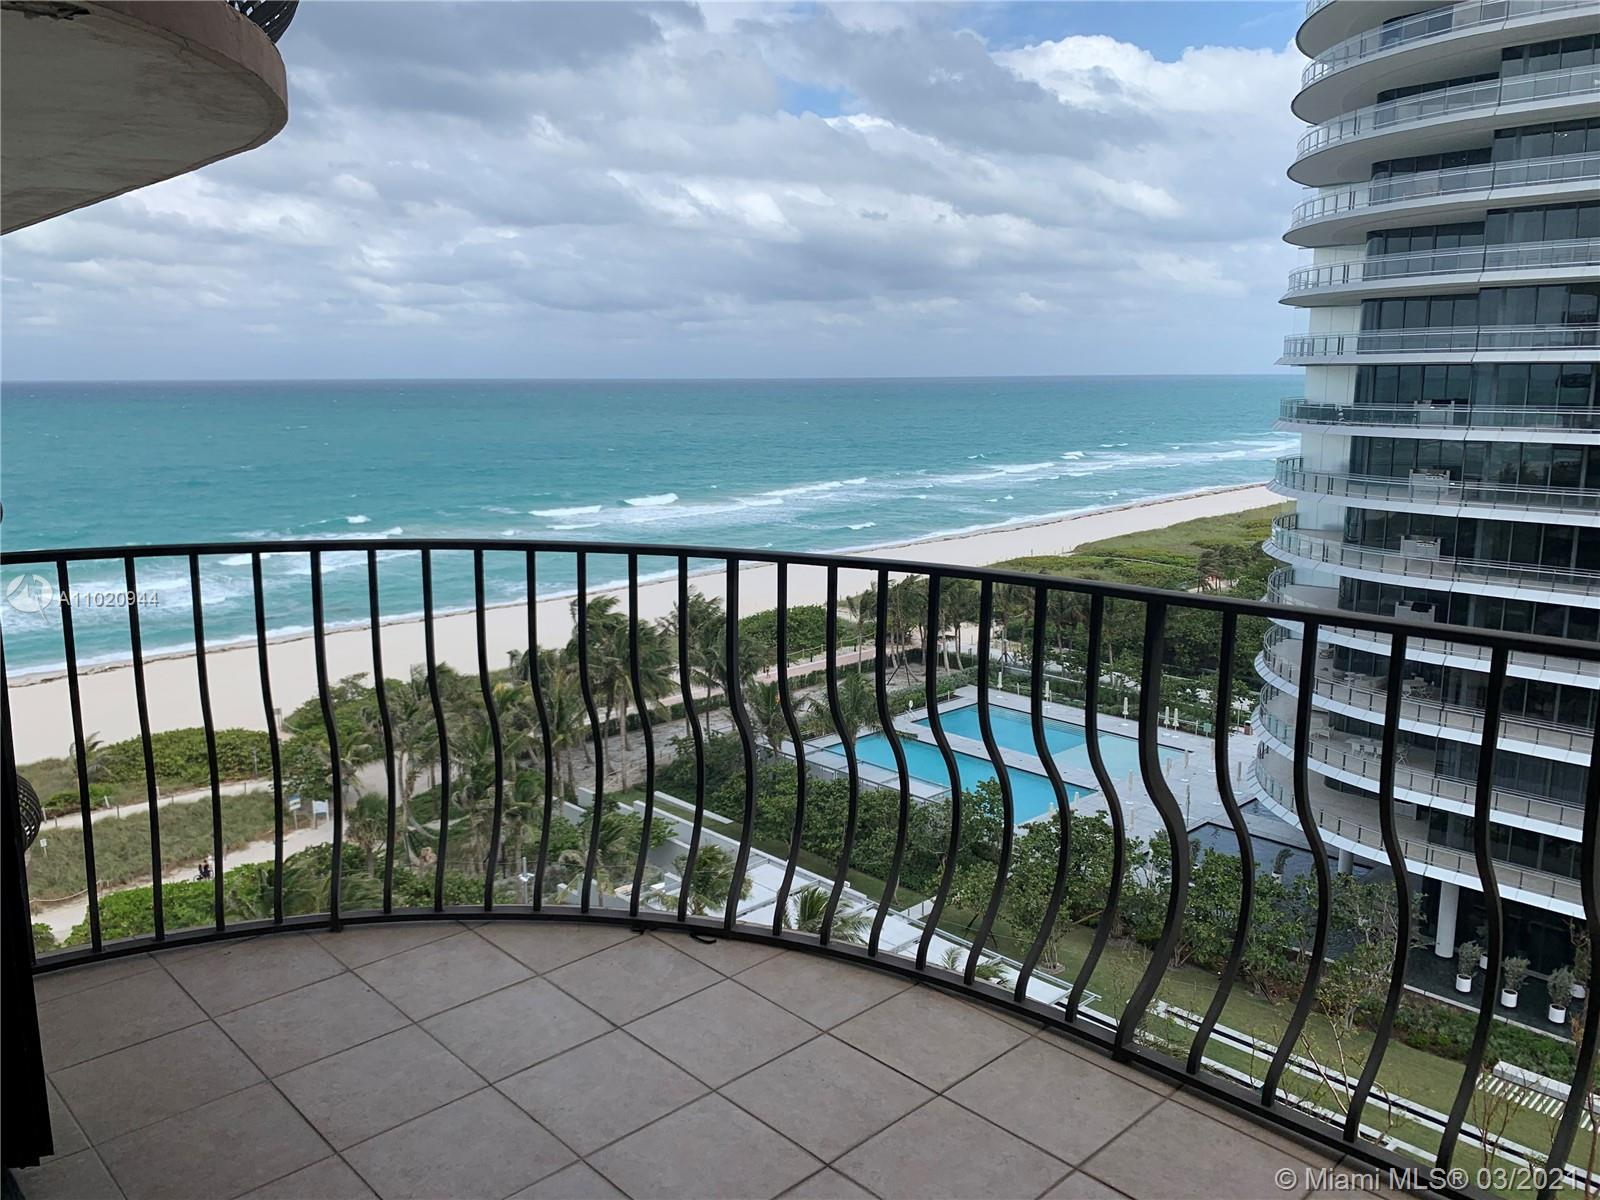 Luxury building on the ocean. Ocean View! Spacious open space layout apartment with beautiful views. Laundry inside the unit. Covered parking #83. Valet parking for second car. Minutes to Bal Harbor shops, house of worship, supermarket and great shops. Heated pool, sauna, fitness center. Building provides high speed internet and cable. Tennis courts across the street and state of the art center for kids. Currently rented to a very good tenant. Security.